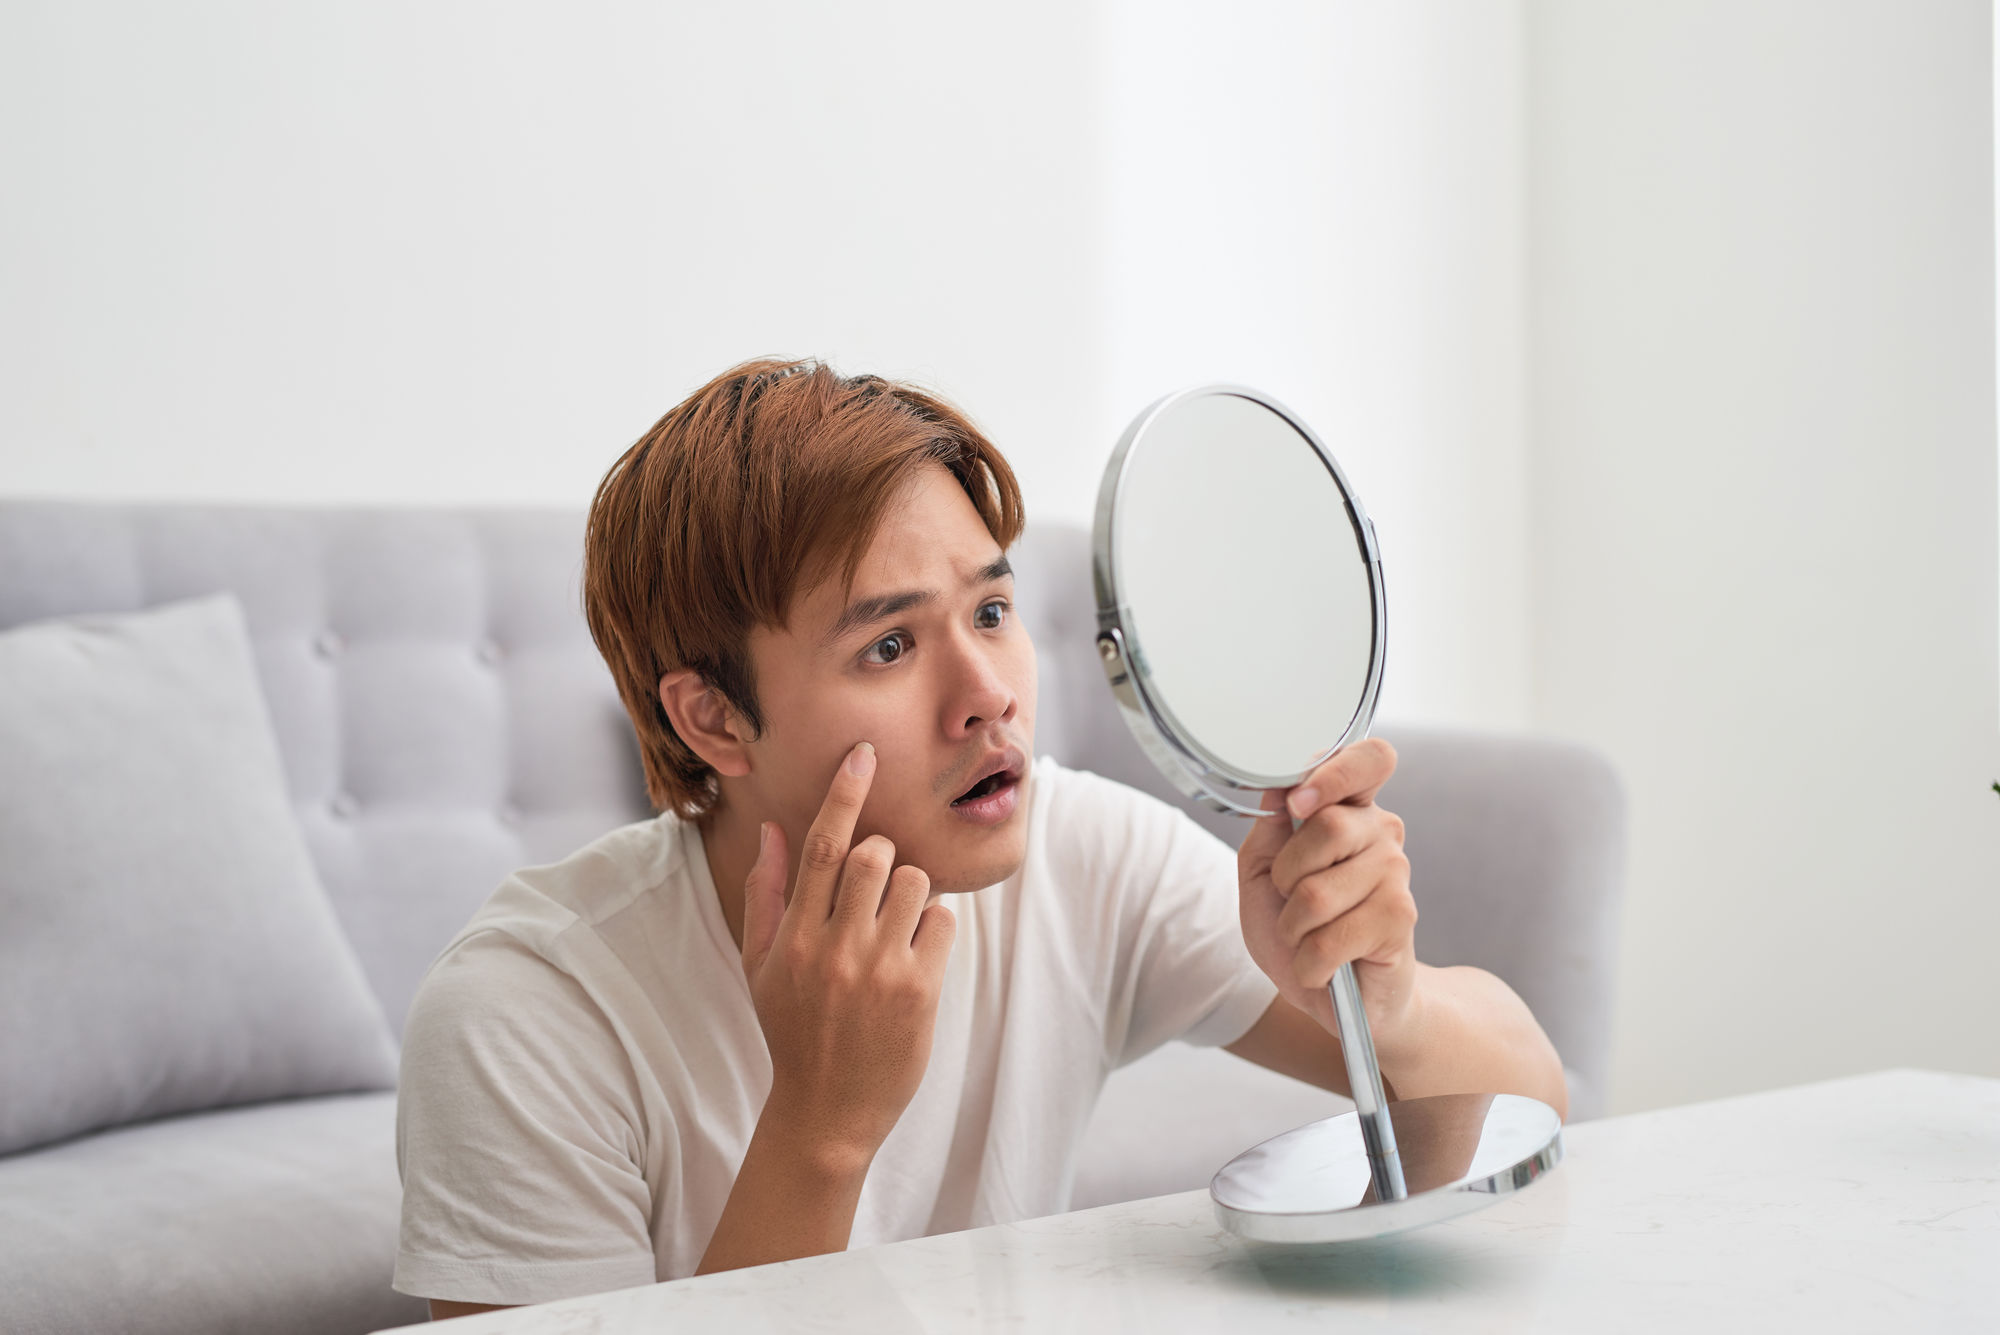 Handsome man looking at himself in mirror. Squeezing pimple.